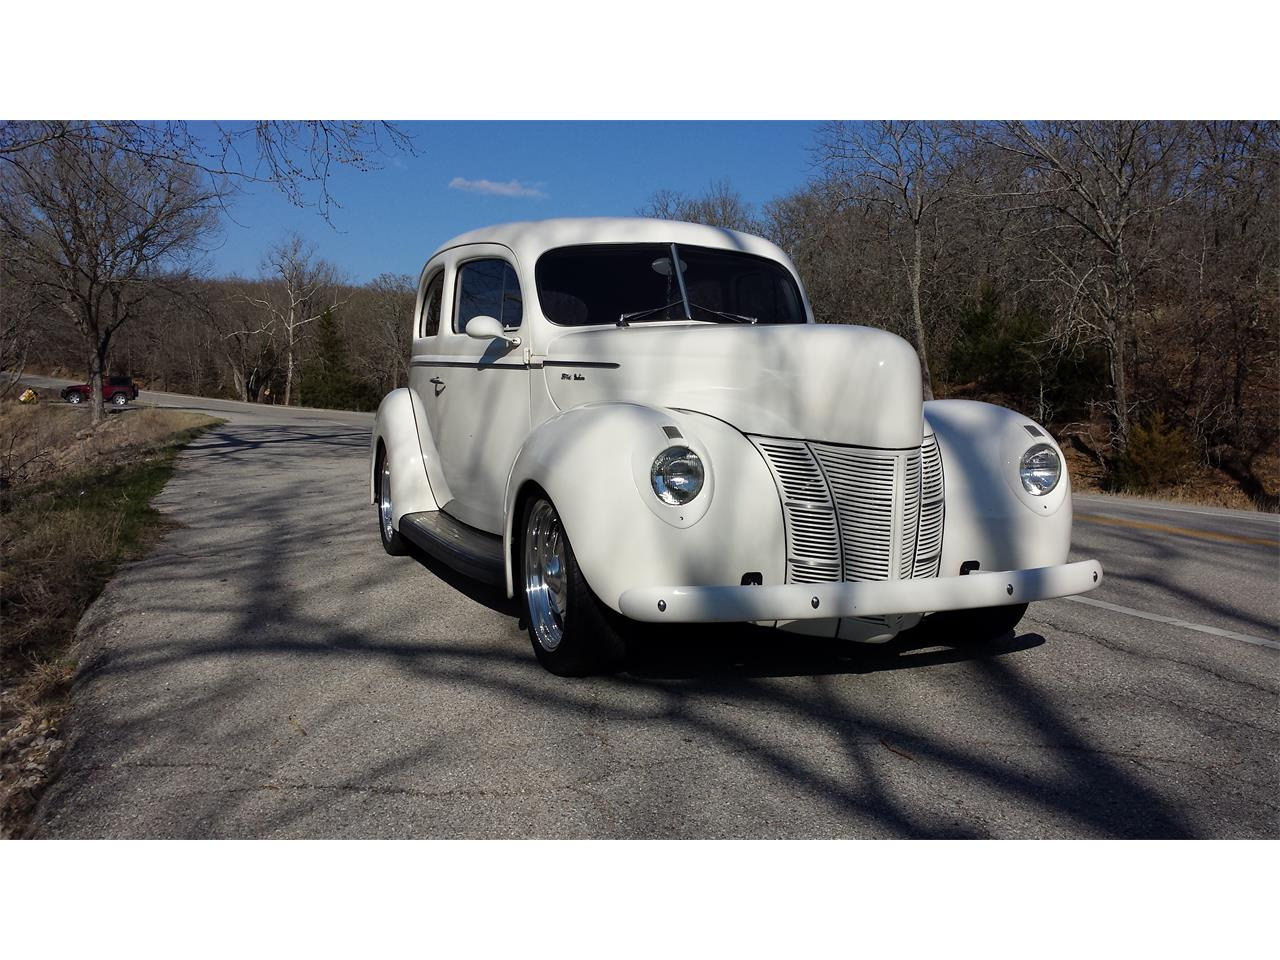 Large Picture of Classic 1940 Ford Deluxe - $29,500.00 Offered by a Private Seller - HO65